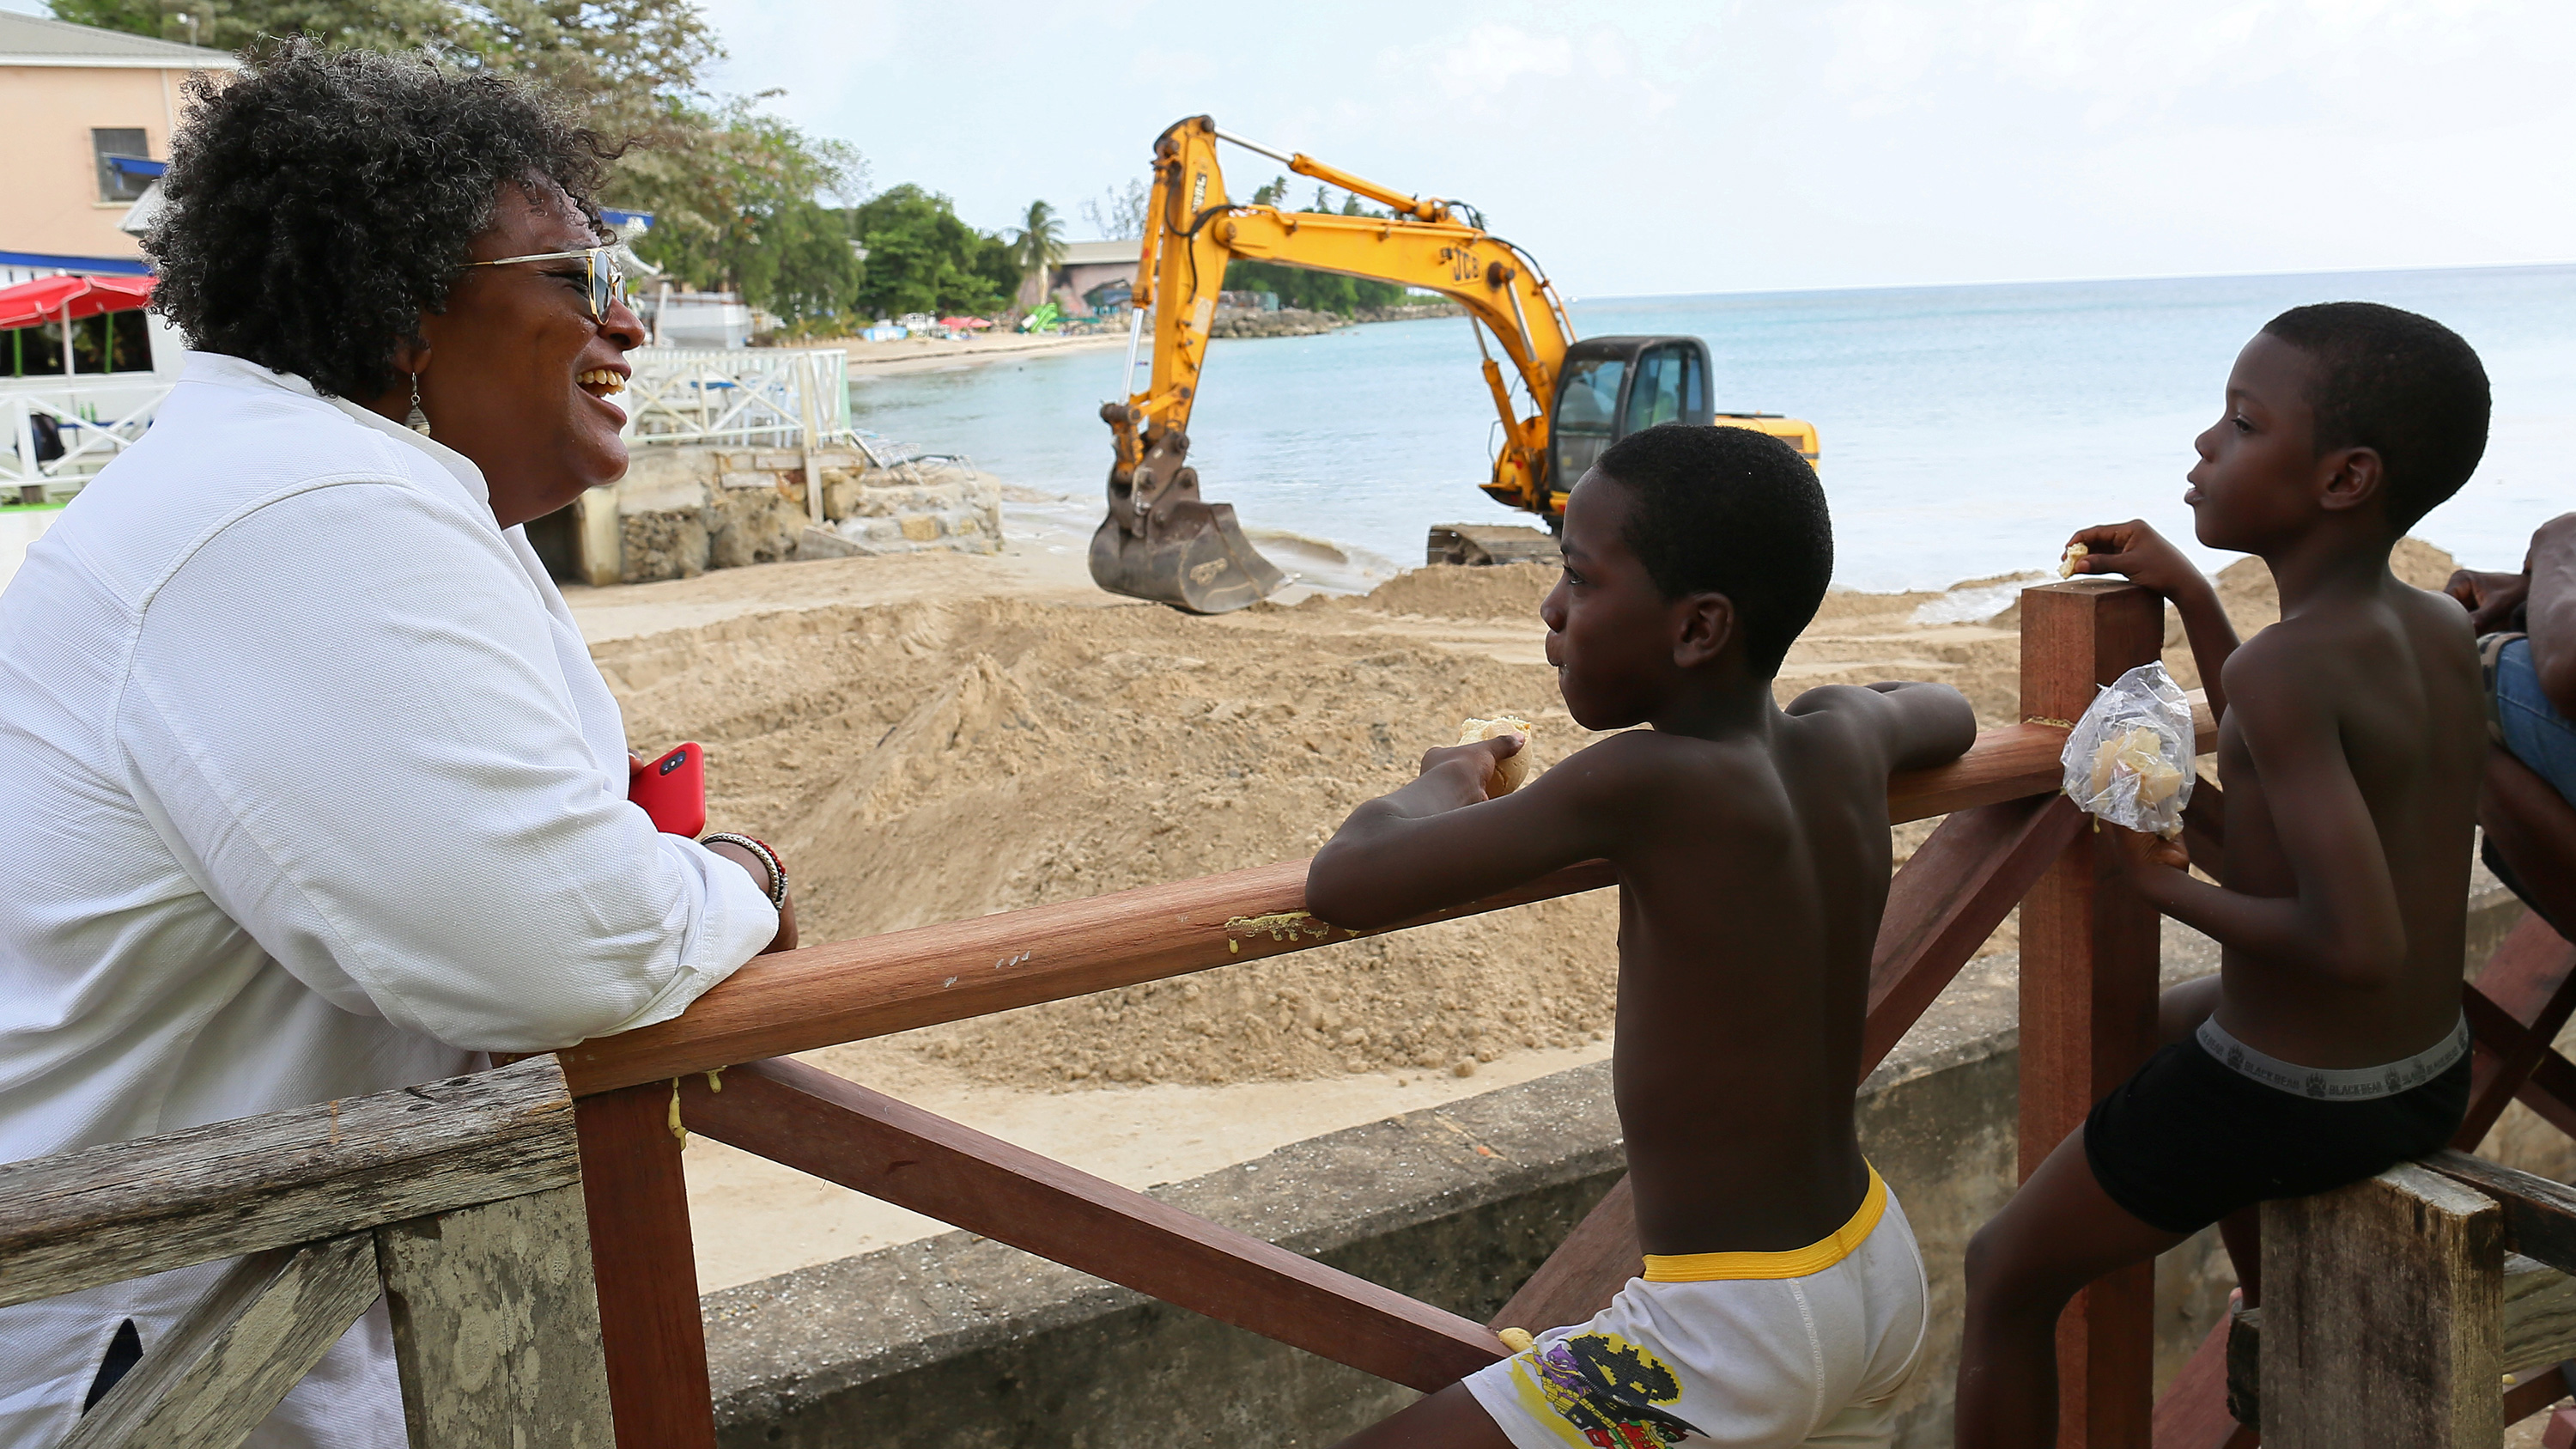 The photo shows the prime minister at the beach leaning on a rail talking to several young children. Construction machinery can be seen in the background.